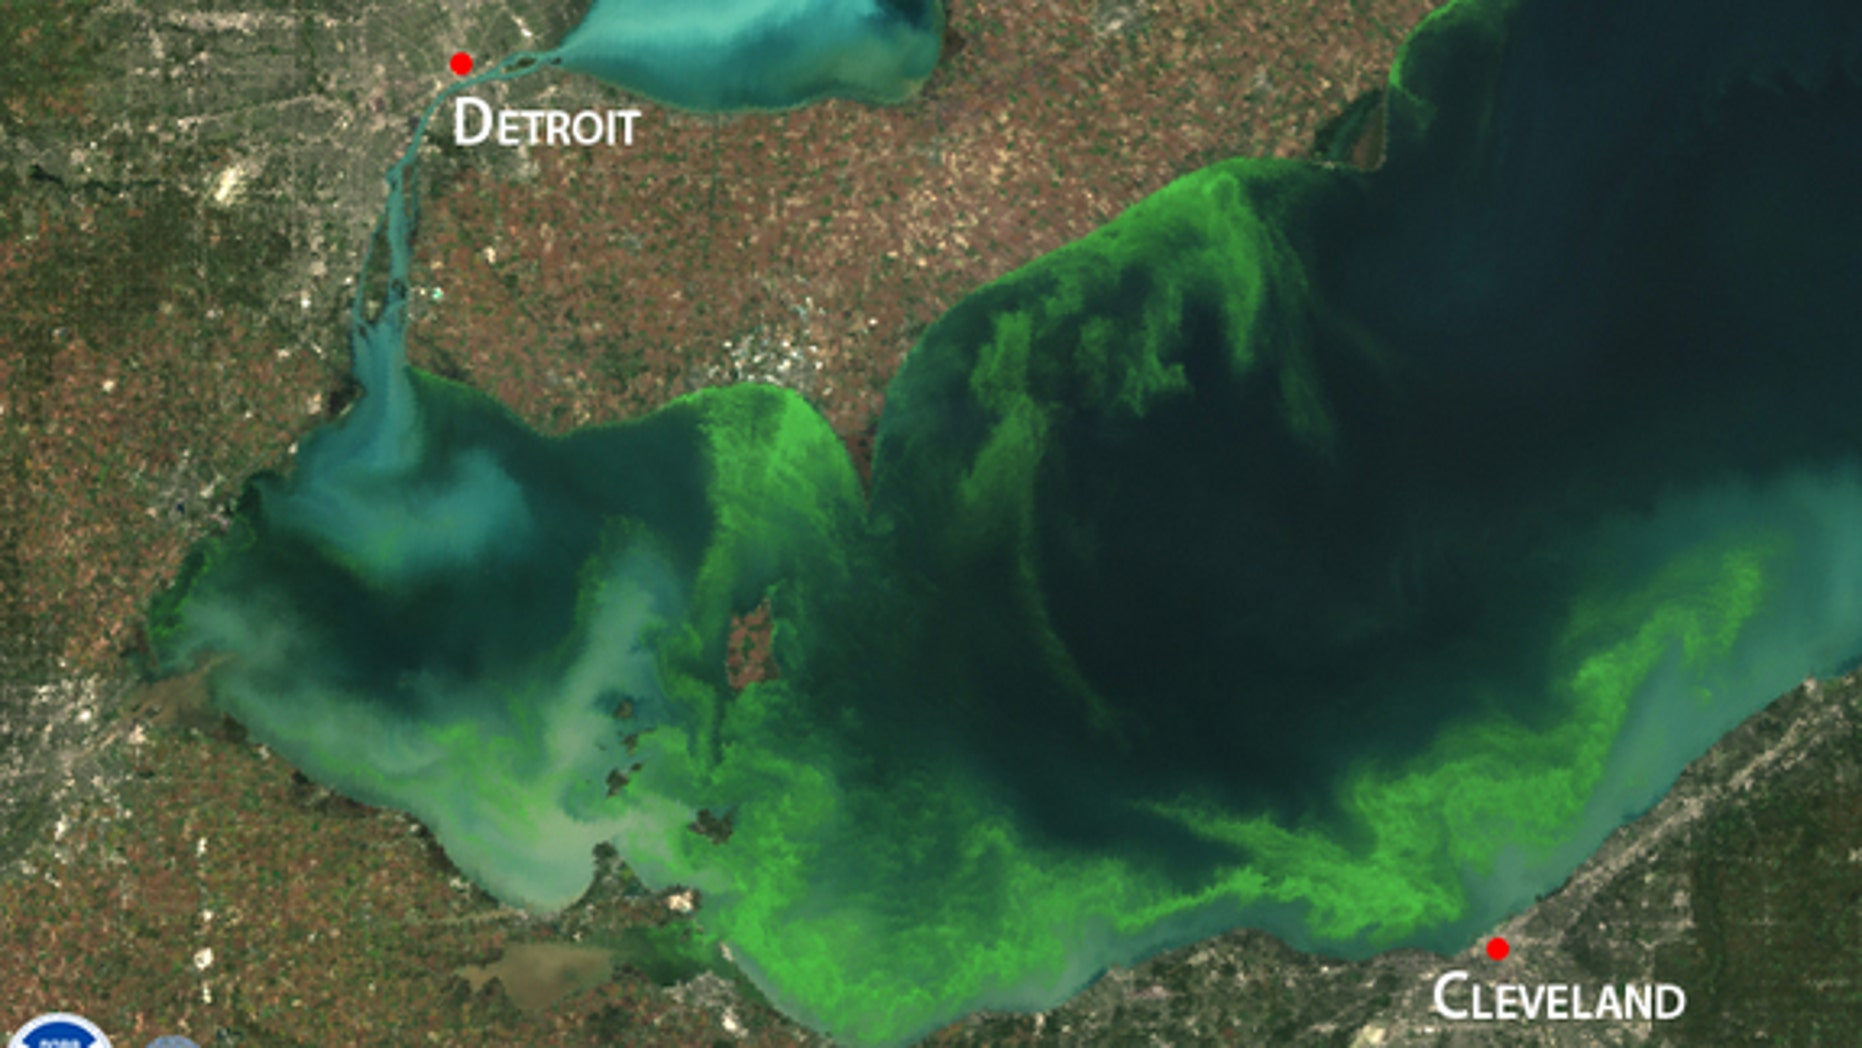 Satellite image of a toxic algae bloom in Lake Erie in 2011, one of the worst blooms in recent years.